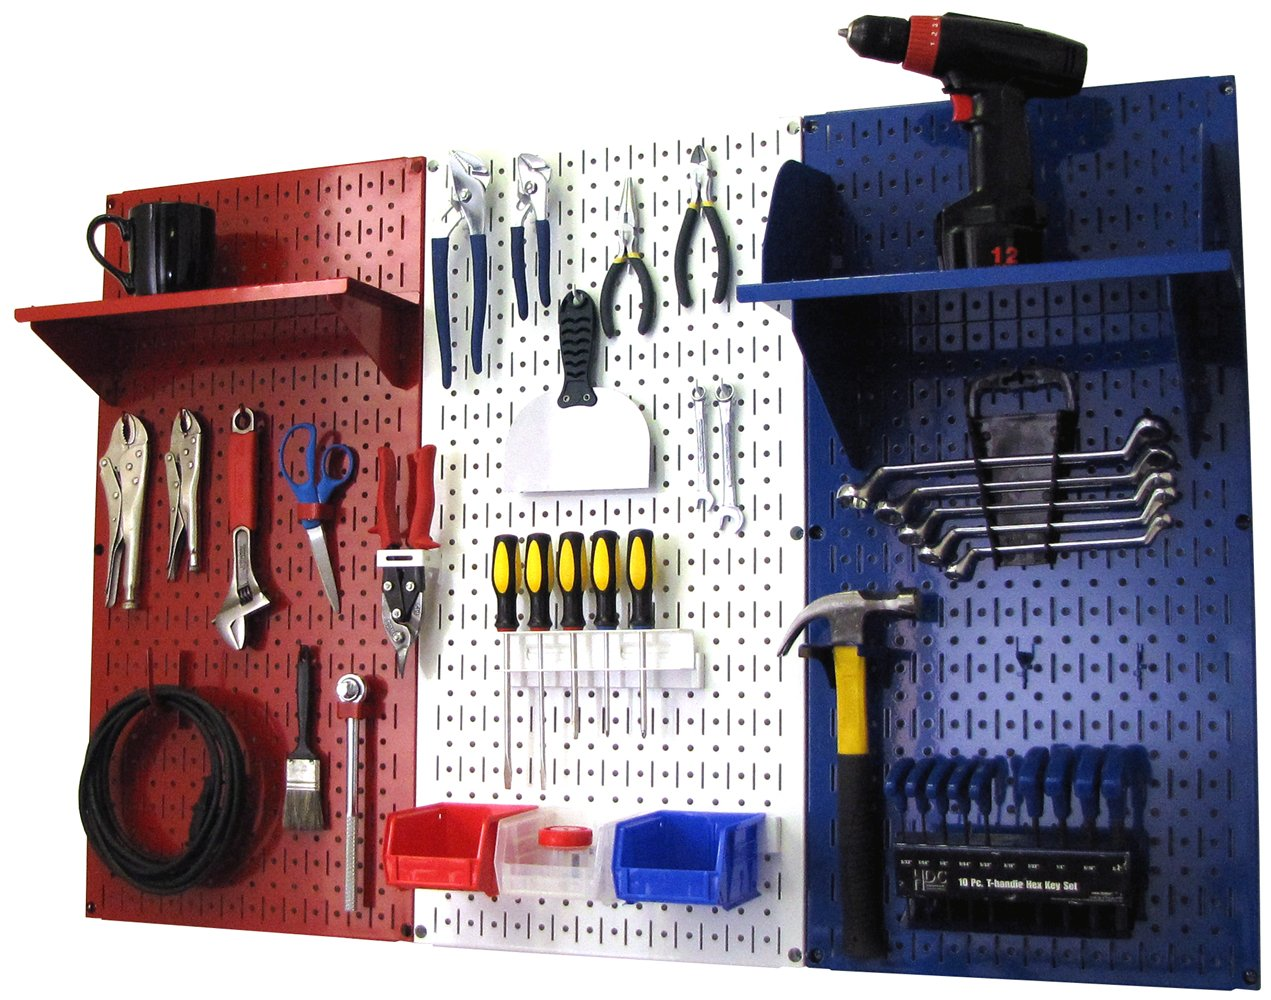 Patriot Pegboard Organizer American Made 4ft Metal Pegboard Tool Storage Kit by Wall Control - Made in the USA